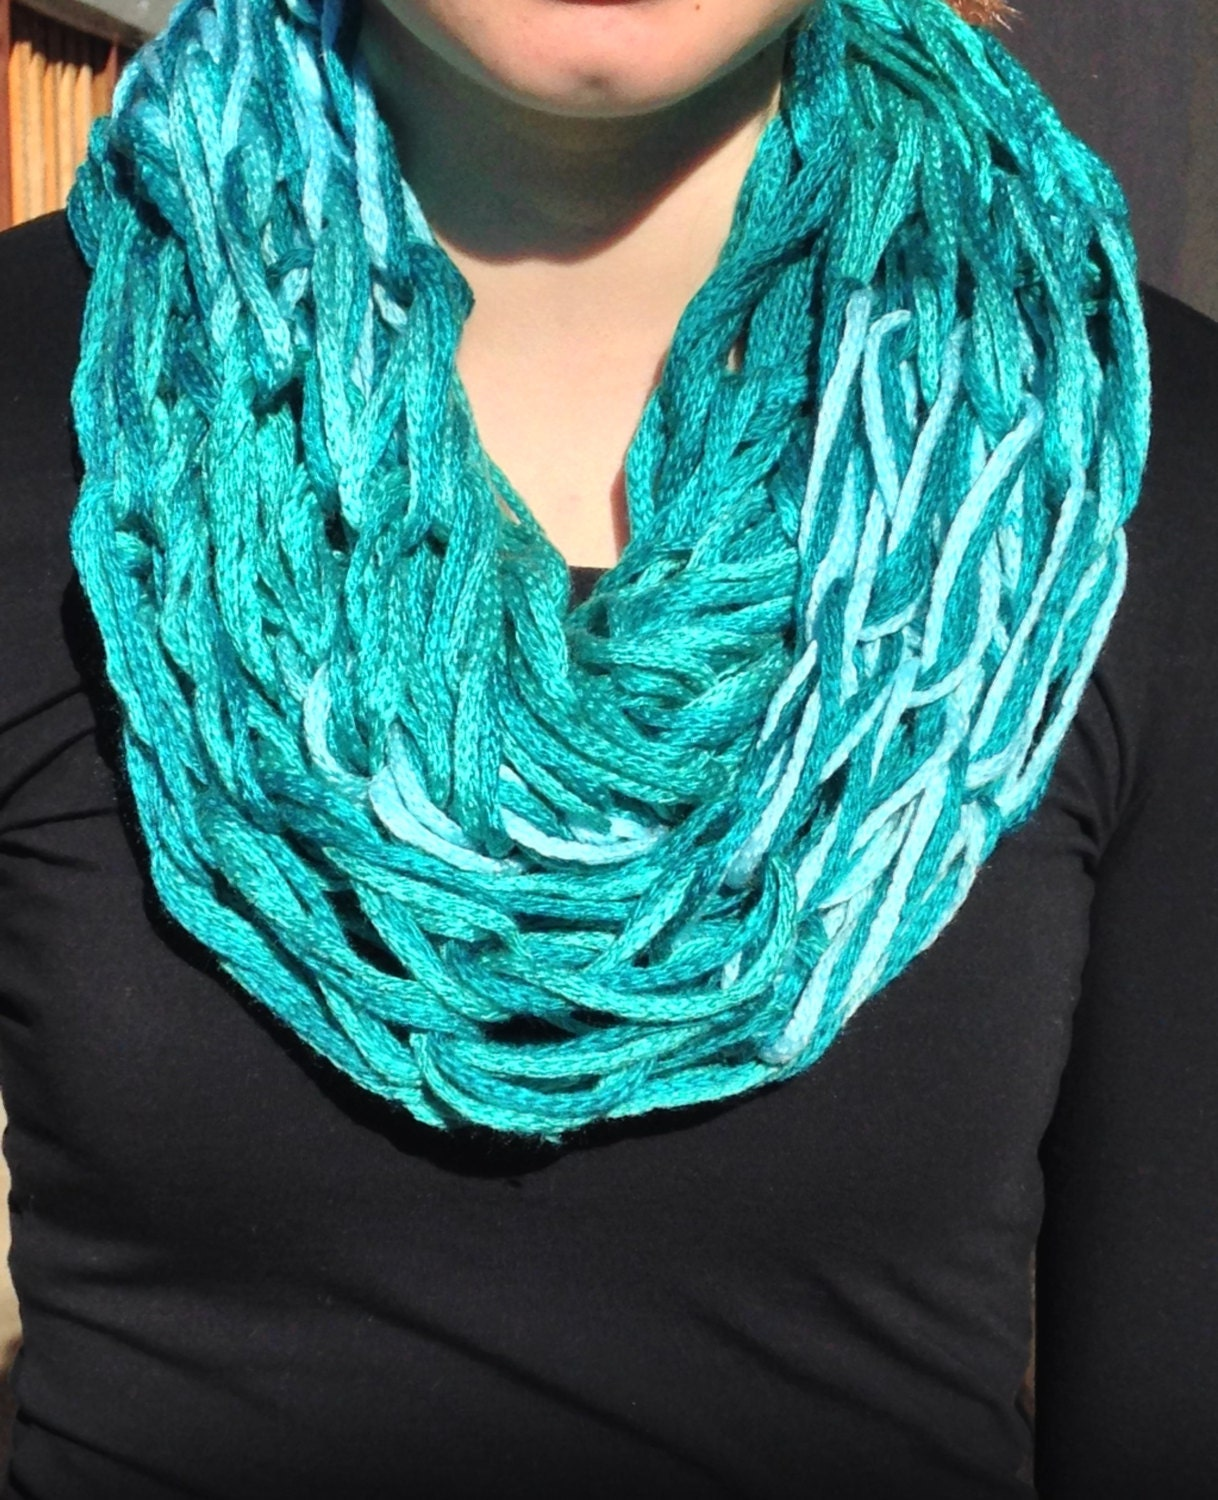 Arm Knit Infinity Scarf; Arm Knit Scarf; Handmade Scarf - Womens Scarf - AphyNAngelDesigns